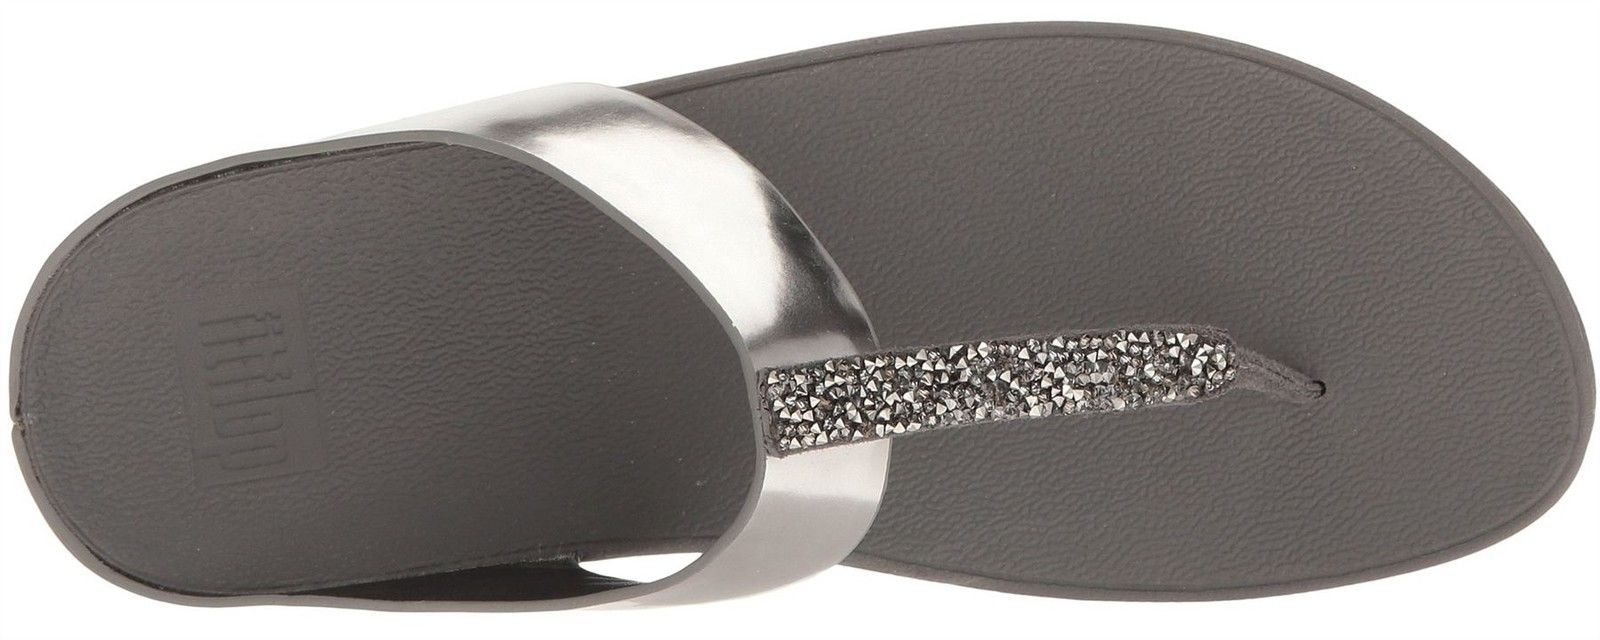 b62d1017e Fitflop Fino Pewter Womens Leather Sandals Flip Flops